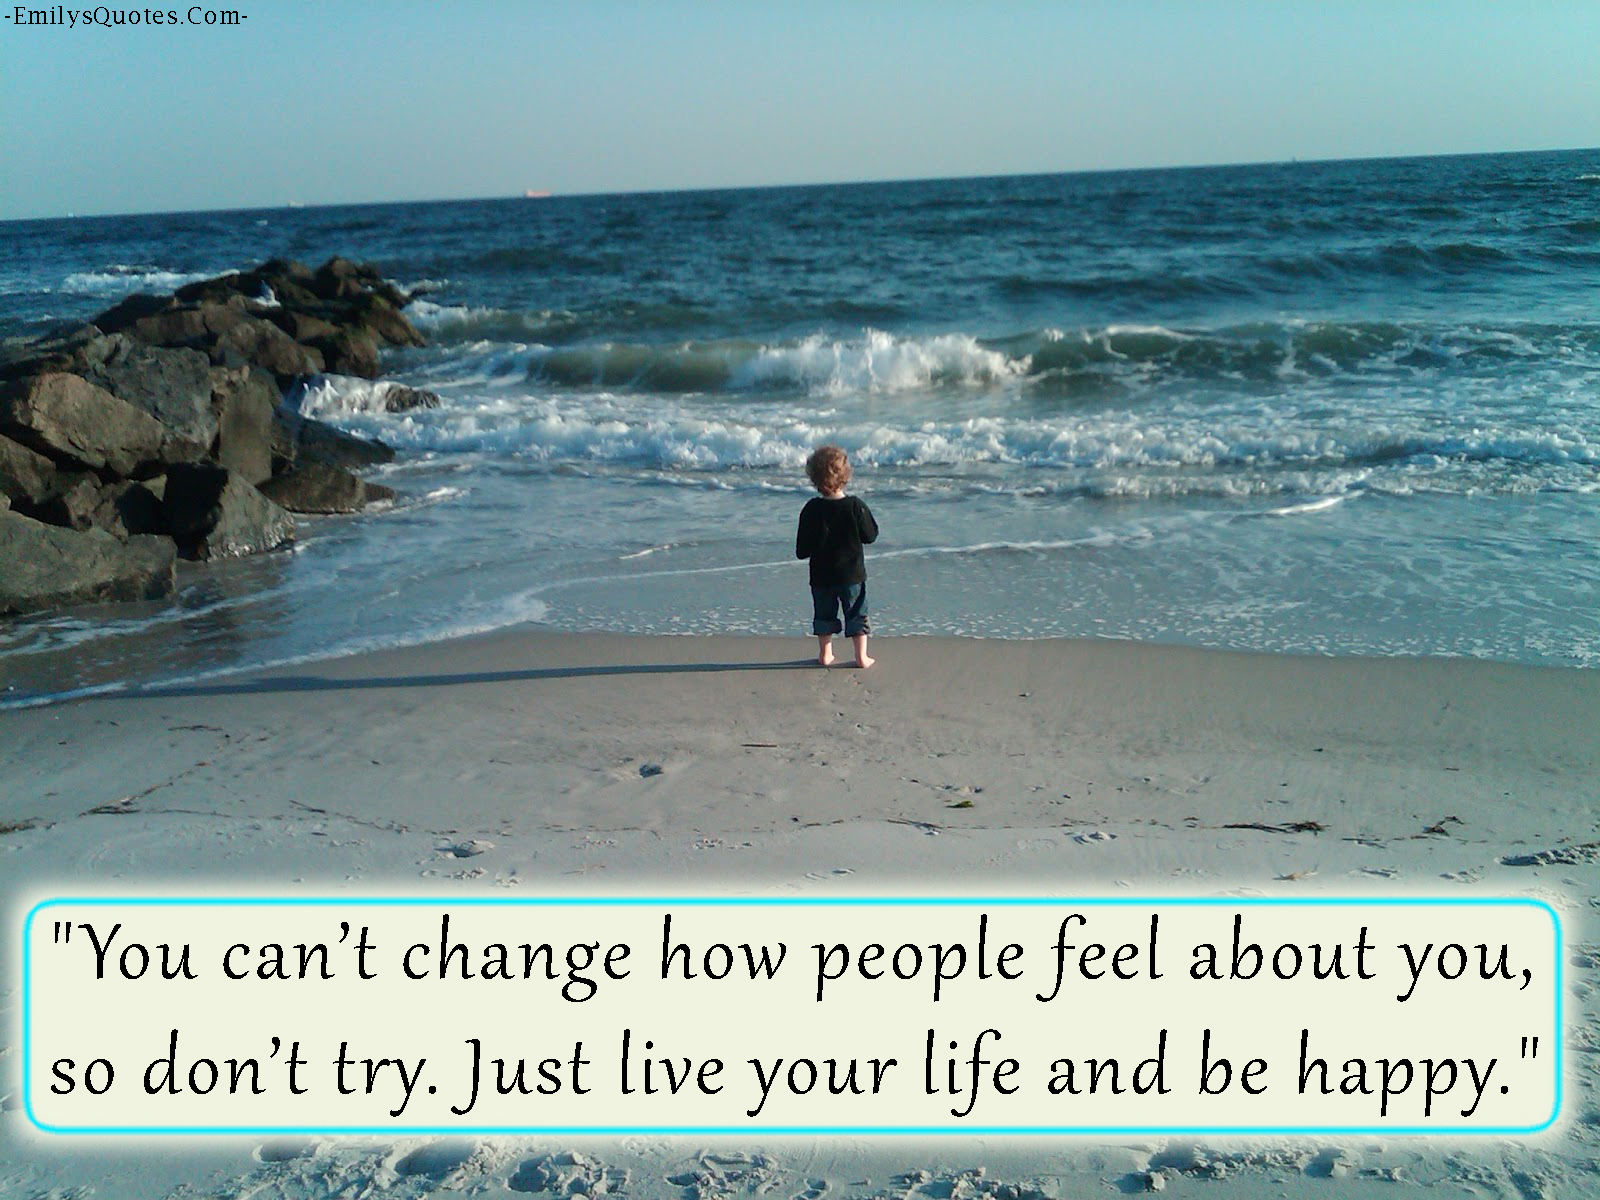 EmilysQuotes.Com - change, people, feel, life, happy, inspirational, moving on, unknown, relationship